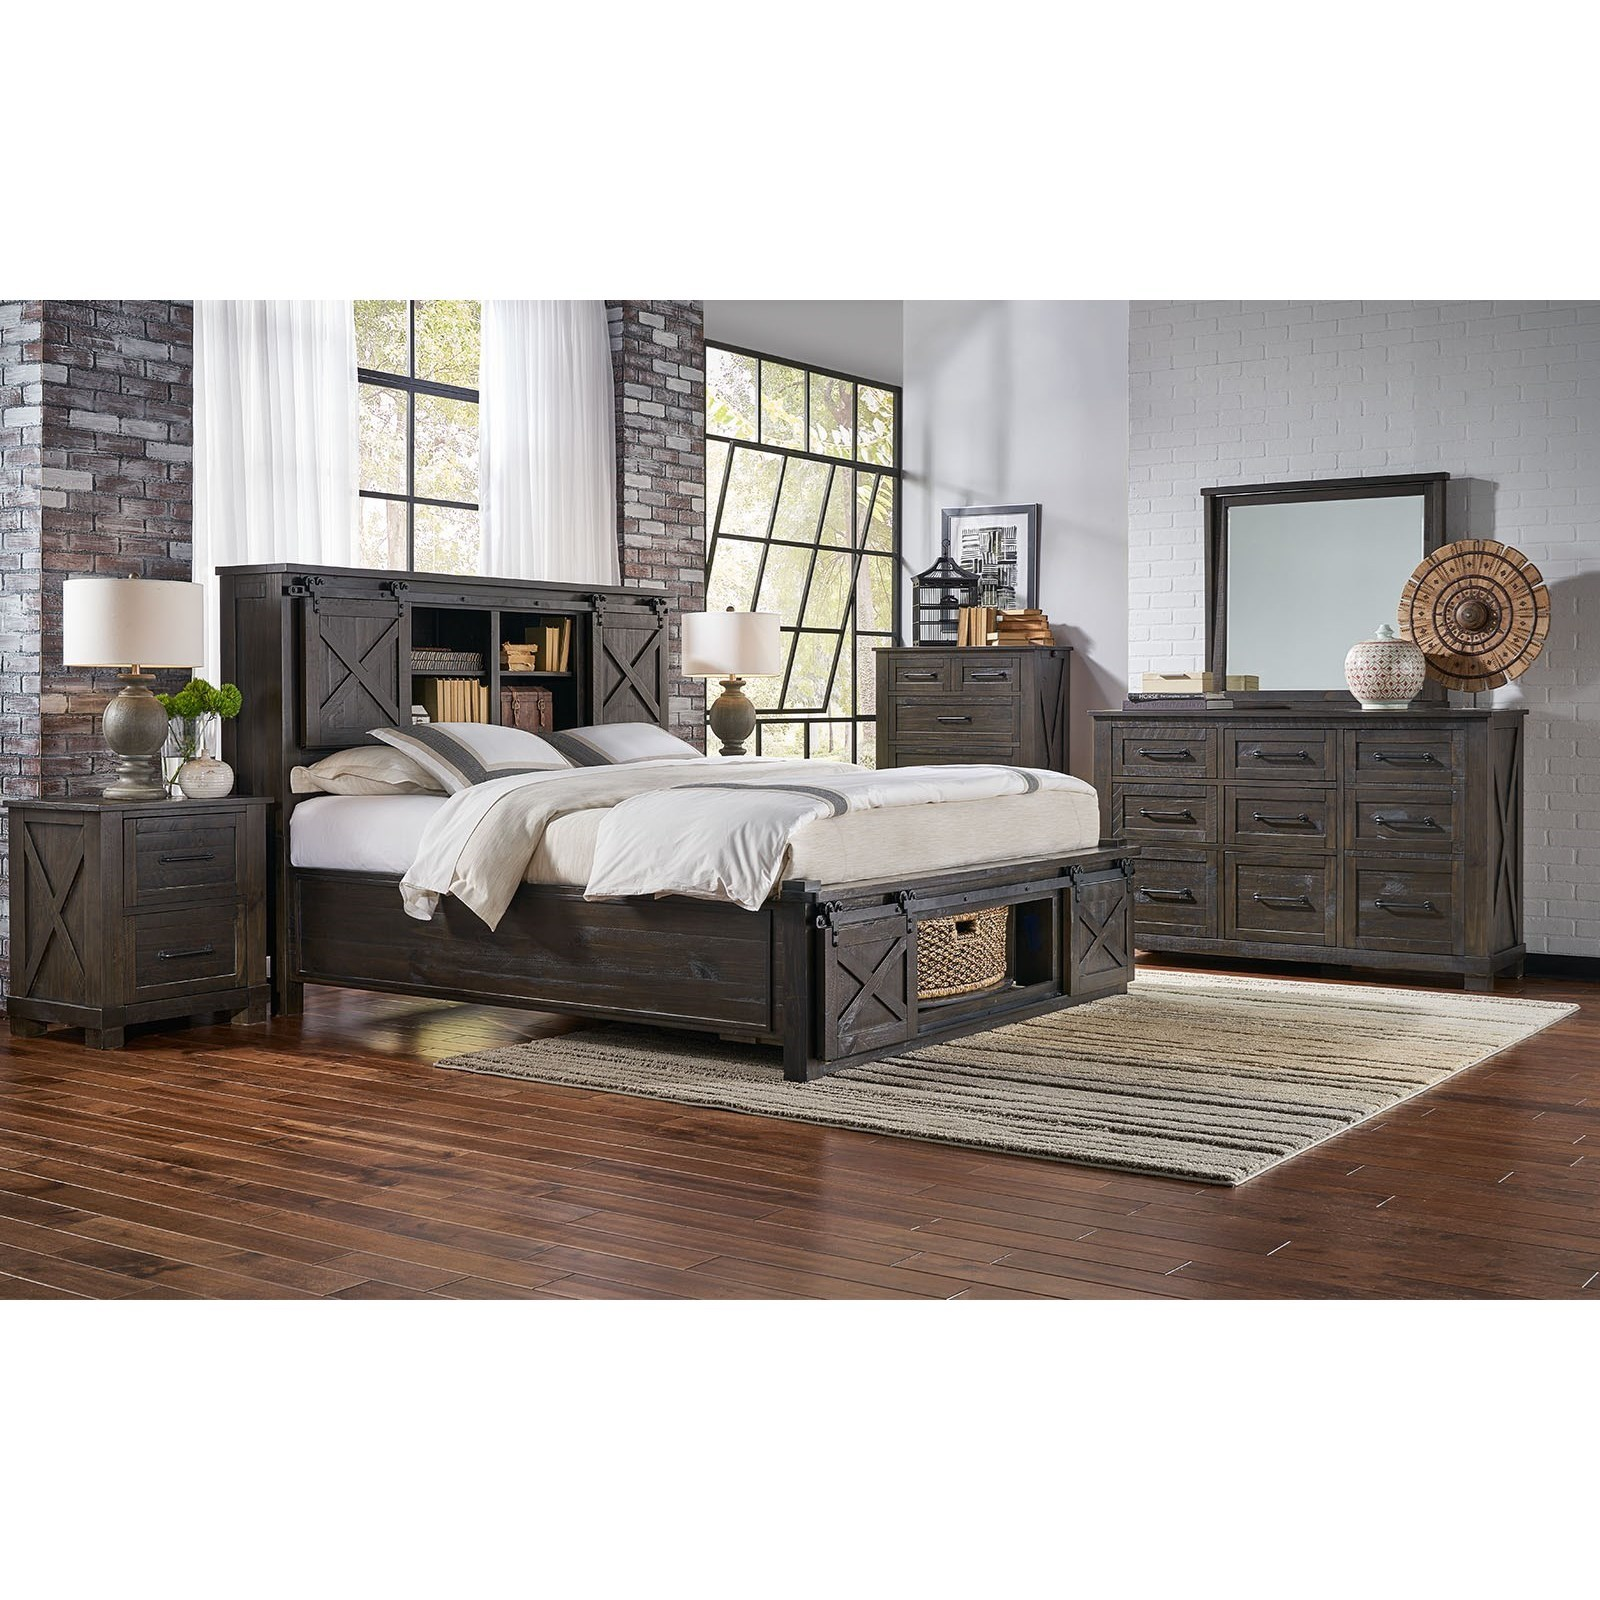 Sun Valley King Bedroom Group by AAmerica at VanDrie Home Furnishings